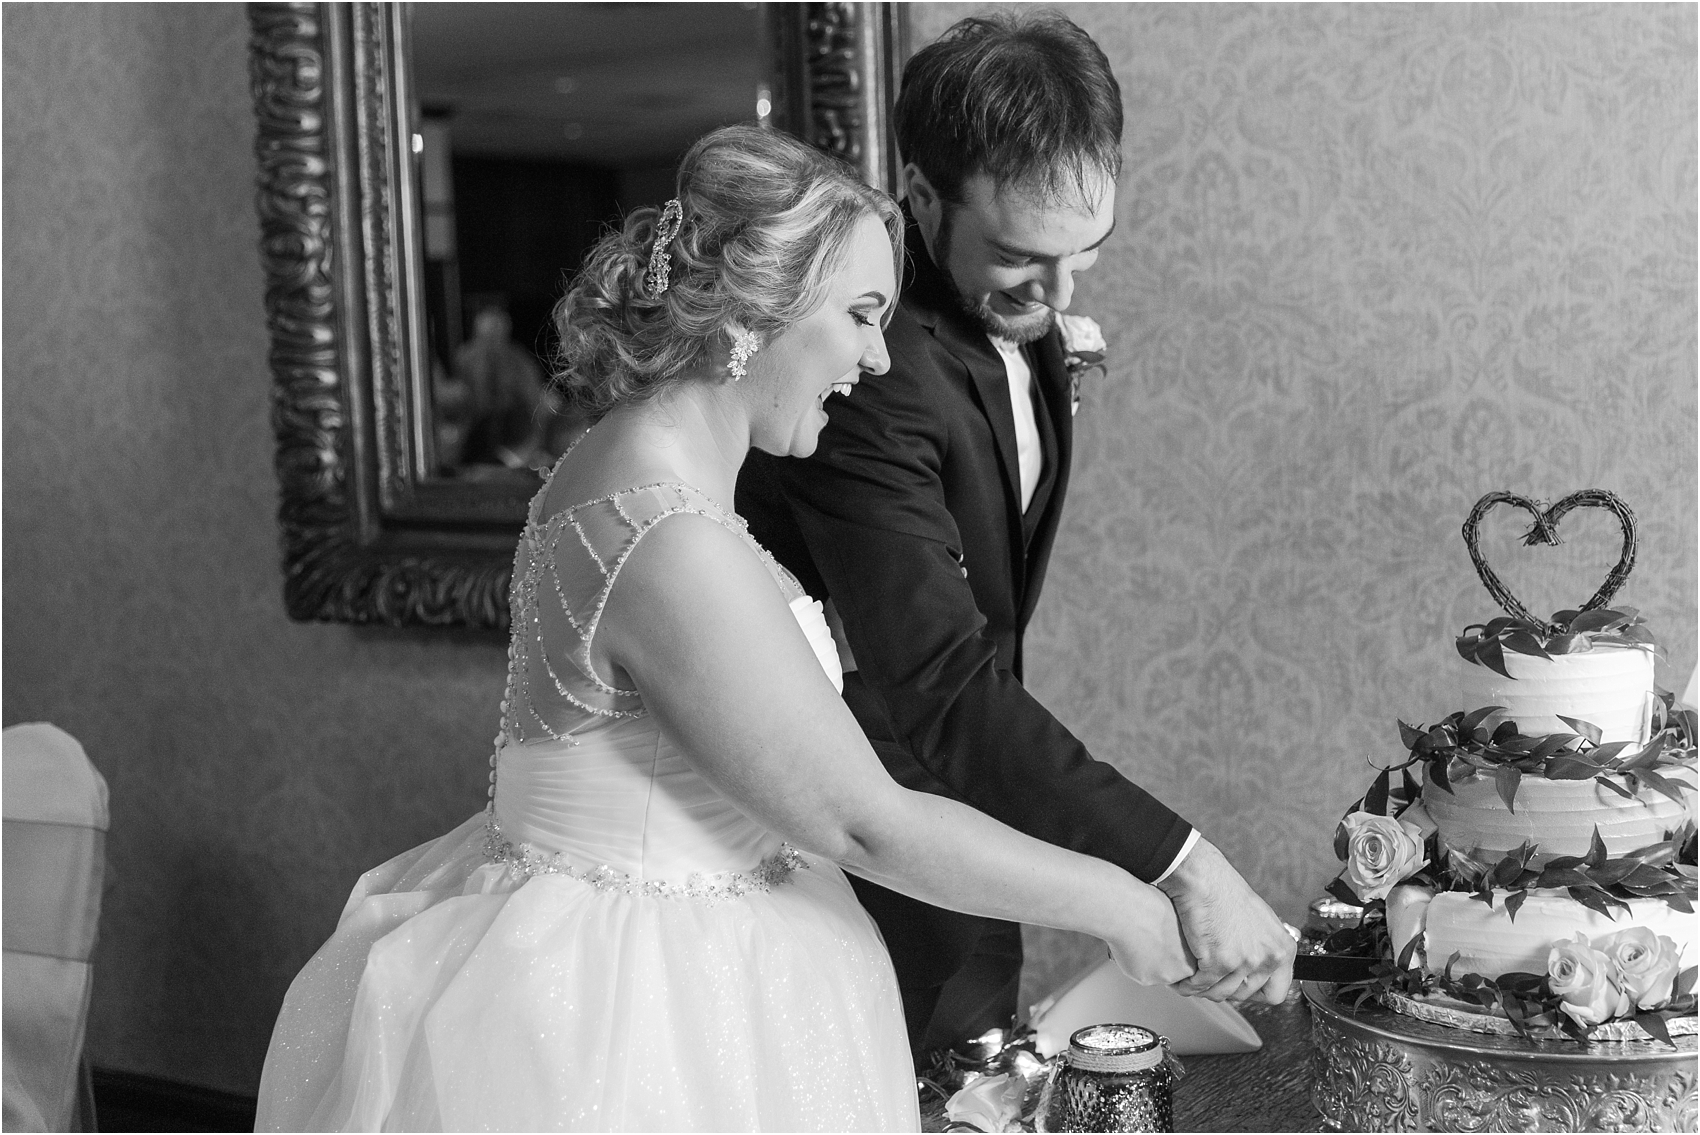 lord-of-the-rings-inspired-wedding-photos-at-crystal-gardens-in-howell-mi-by-courtney-carolyn-photography_0084.jpg